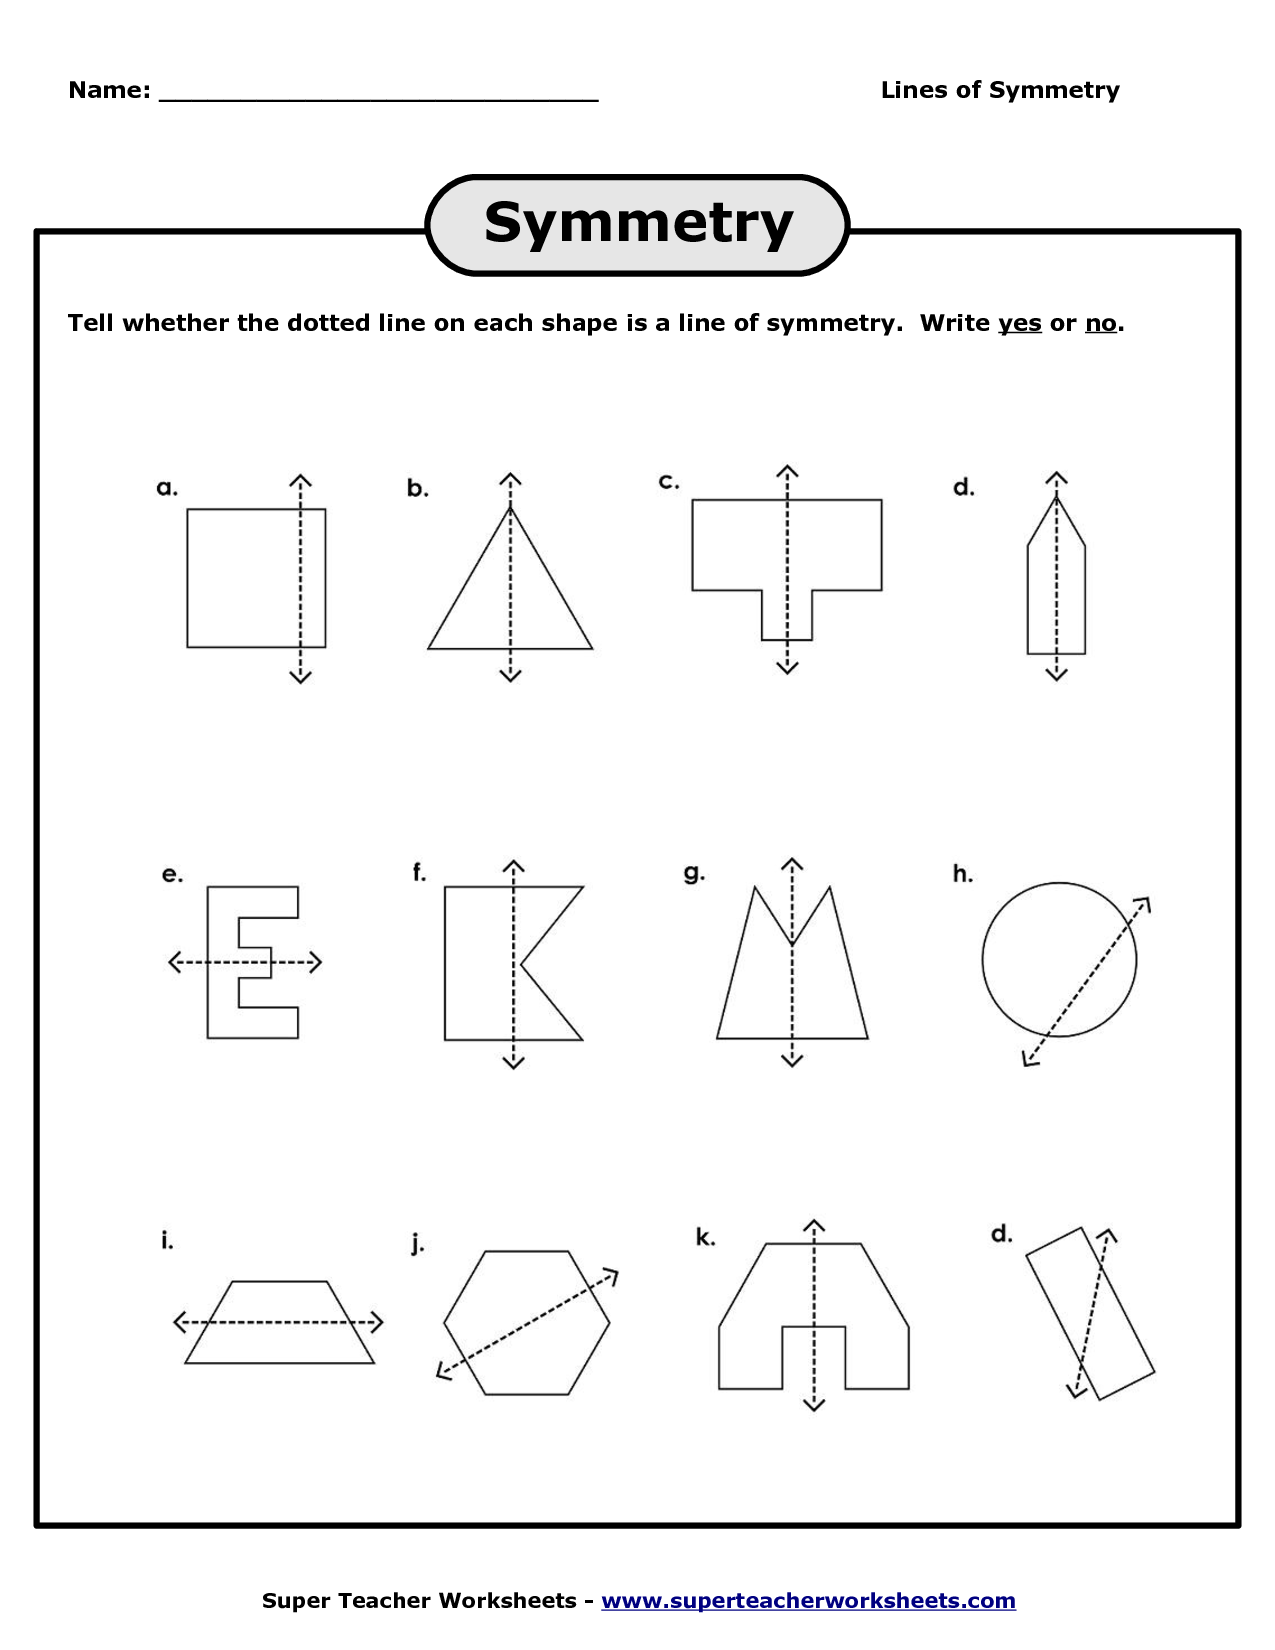 Drawing Lines Of Symmetry Worksheet : Lines of symmetry worksheets worksheet